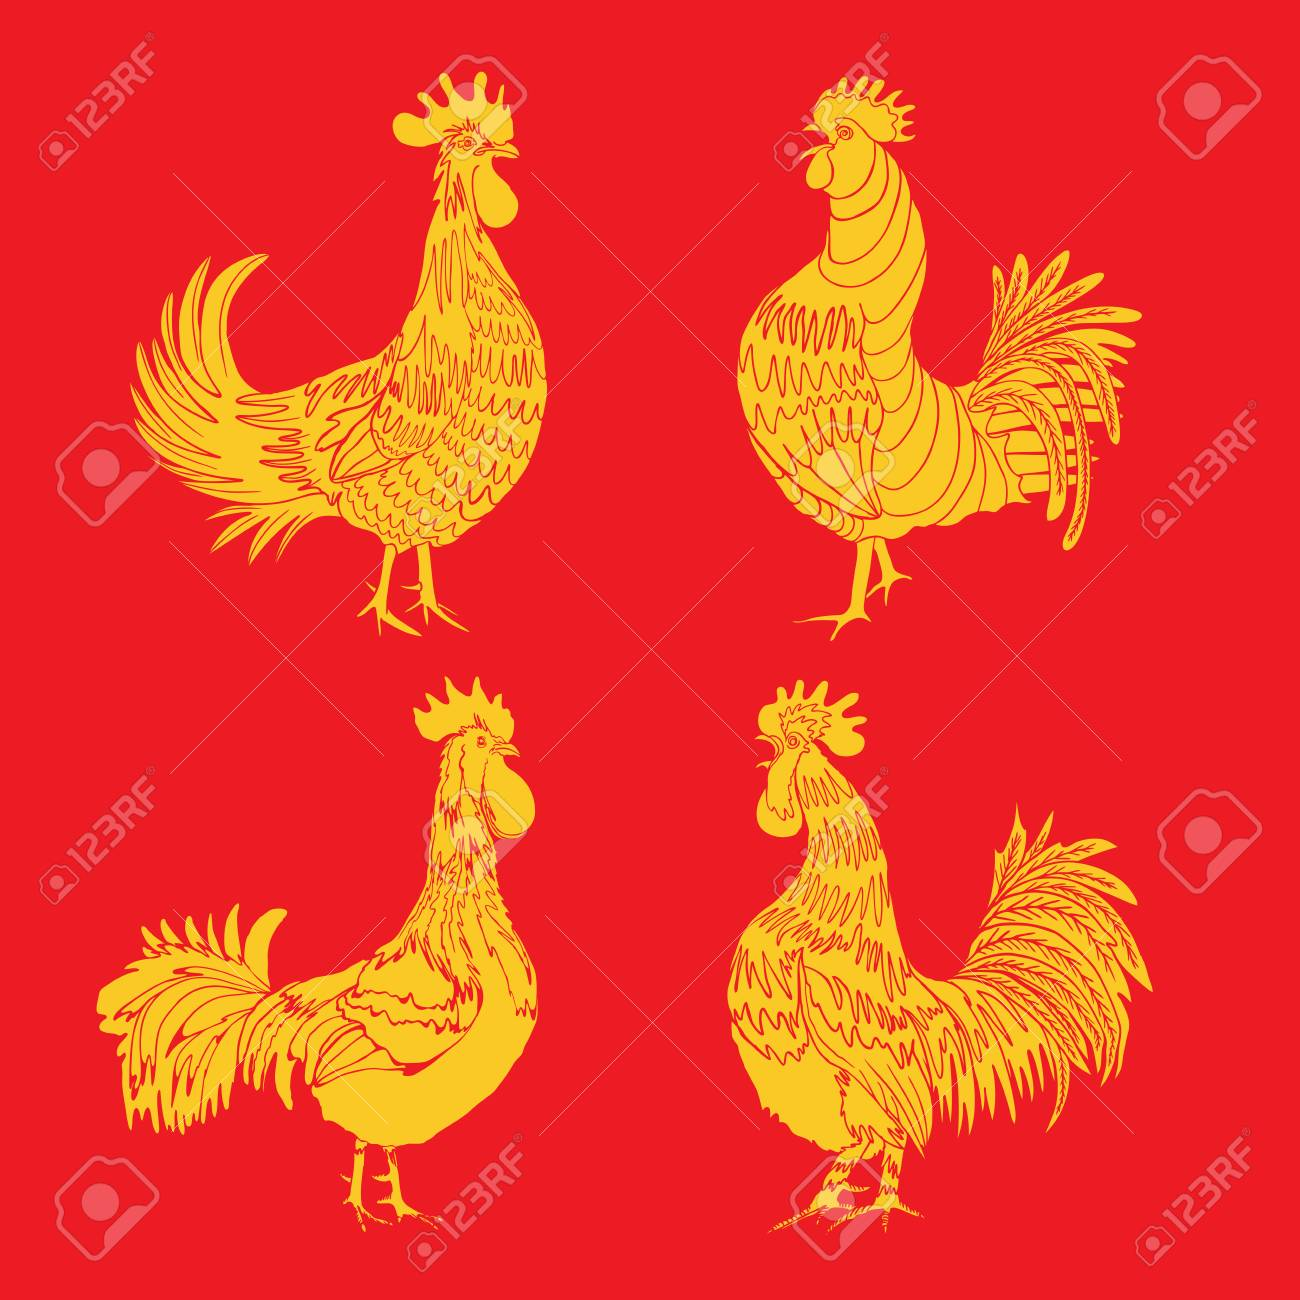 Set Of Roosters As Animals Zodiac Symbols For Chinese New Year